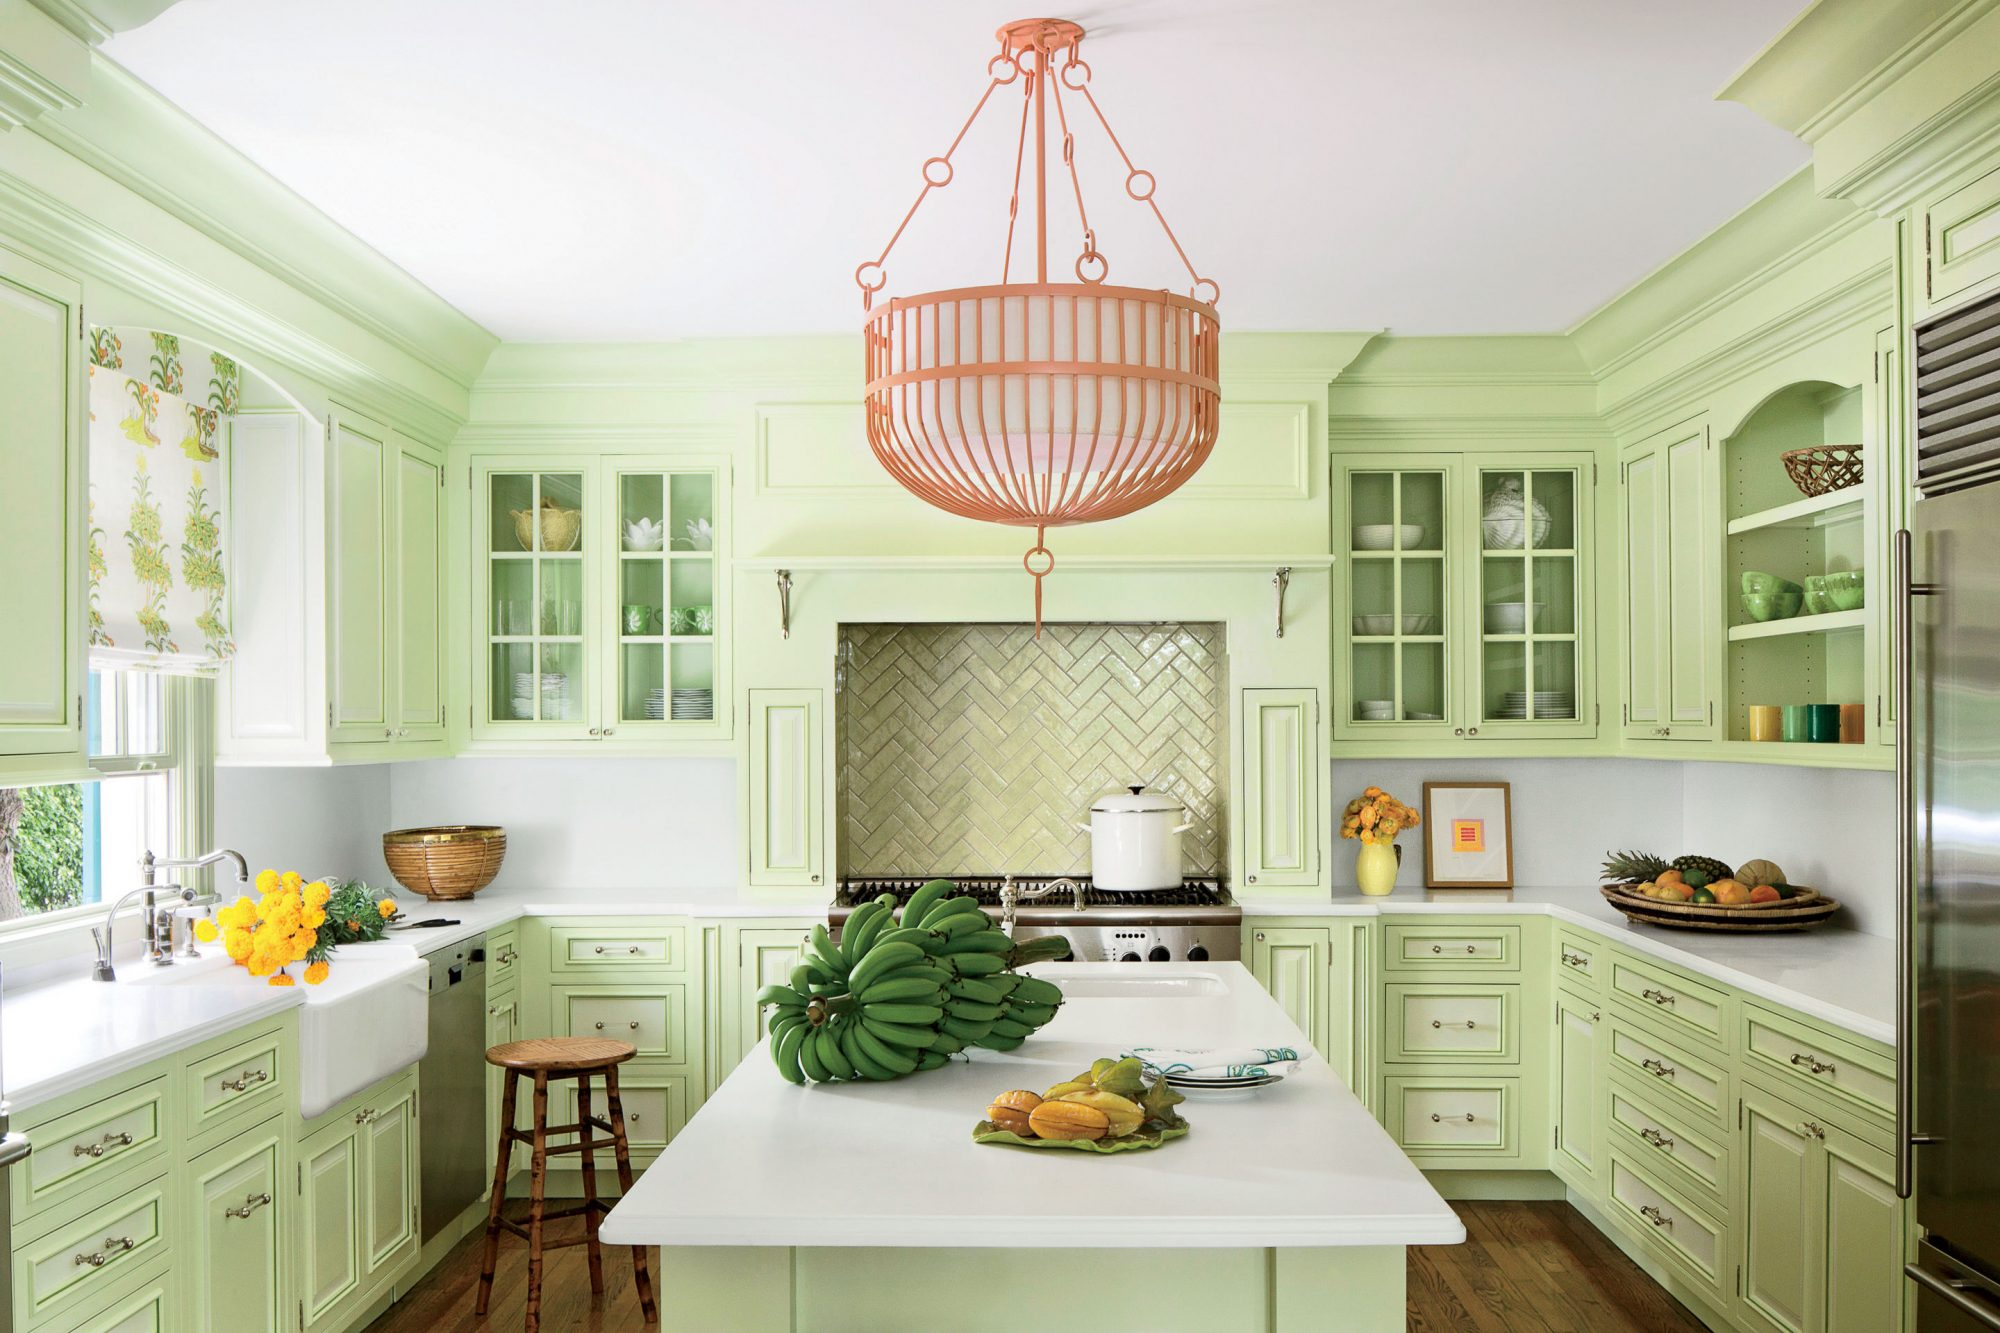 We're loving this Key lime color story. Play up the look with a backsplash that reflects the scheme, such as these glossy green tiles by Tiepolo Tileworks over the range. Stick with a neutral backsplash elsewhere to balance the design.